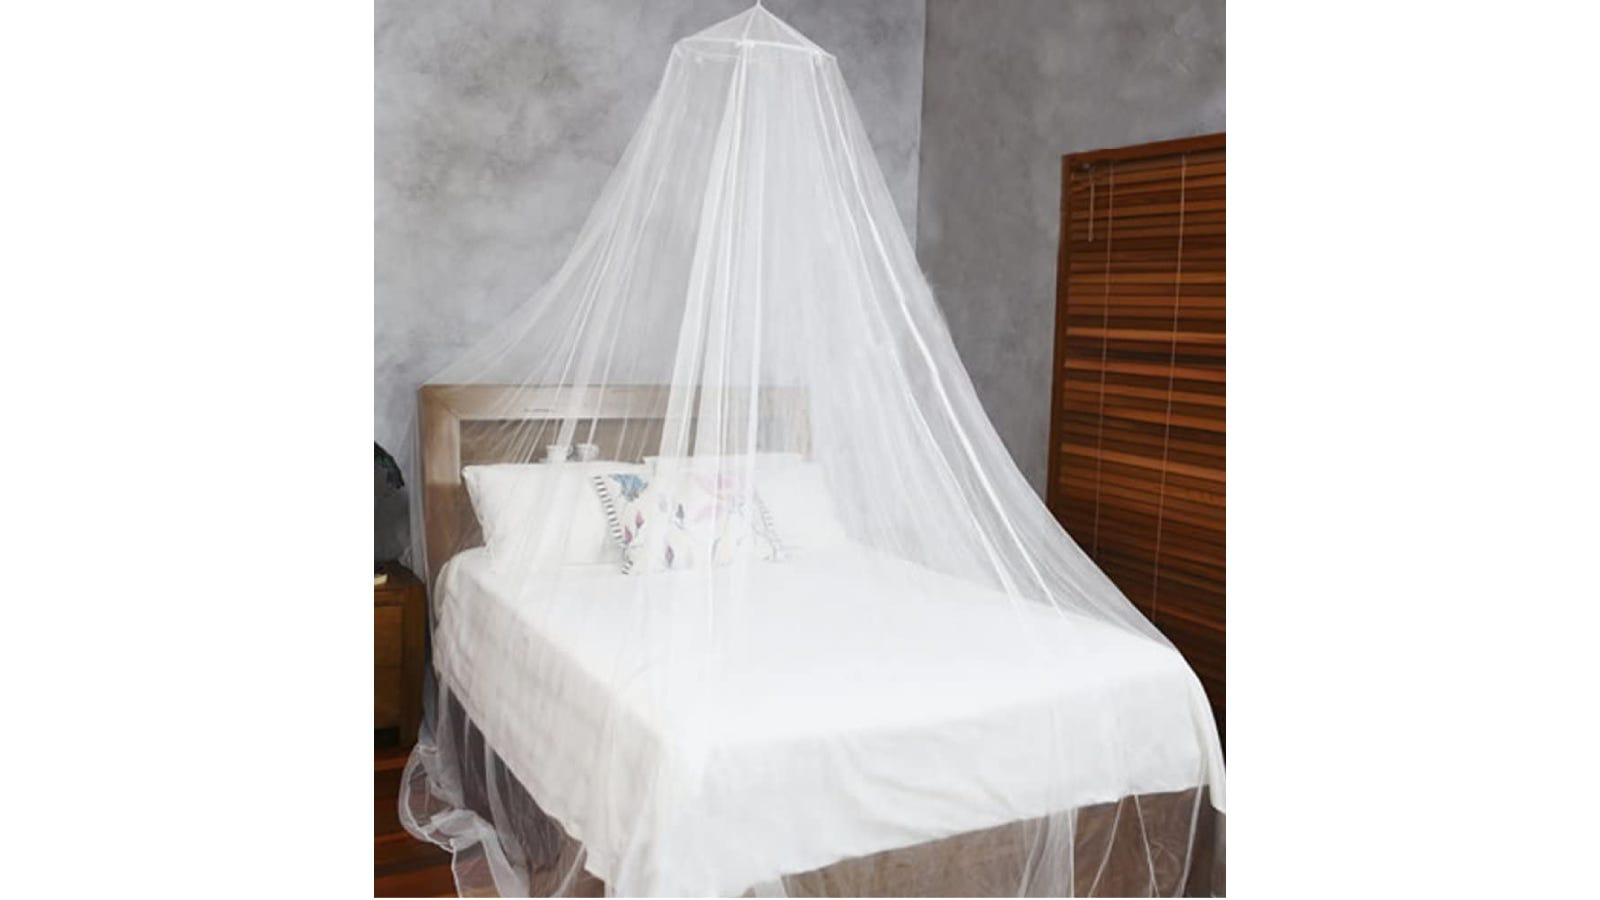 A white canopy with a round base hanging over a white bed.